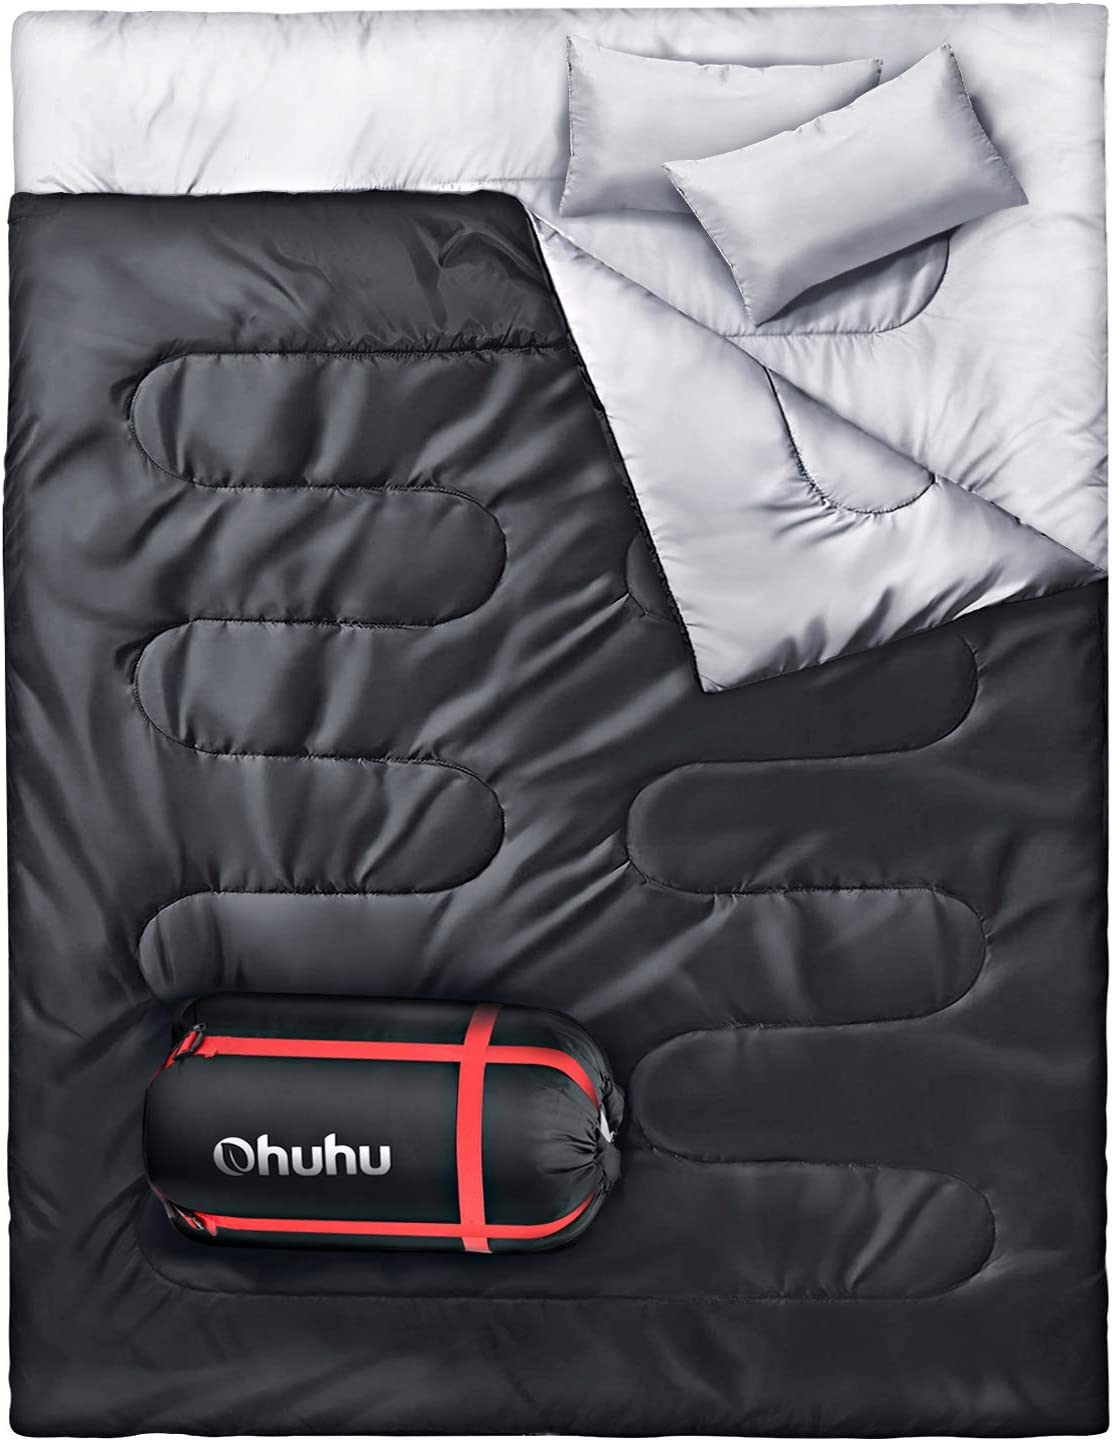 Ohuhu Double Sleeping Bag, 2 Person Sleeping Bags with 2 Pillows for Adults, Teens, Cold Cool Weather Camping, Backpacking, Hiking Accessories in ...